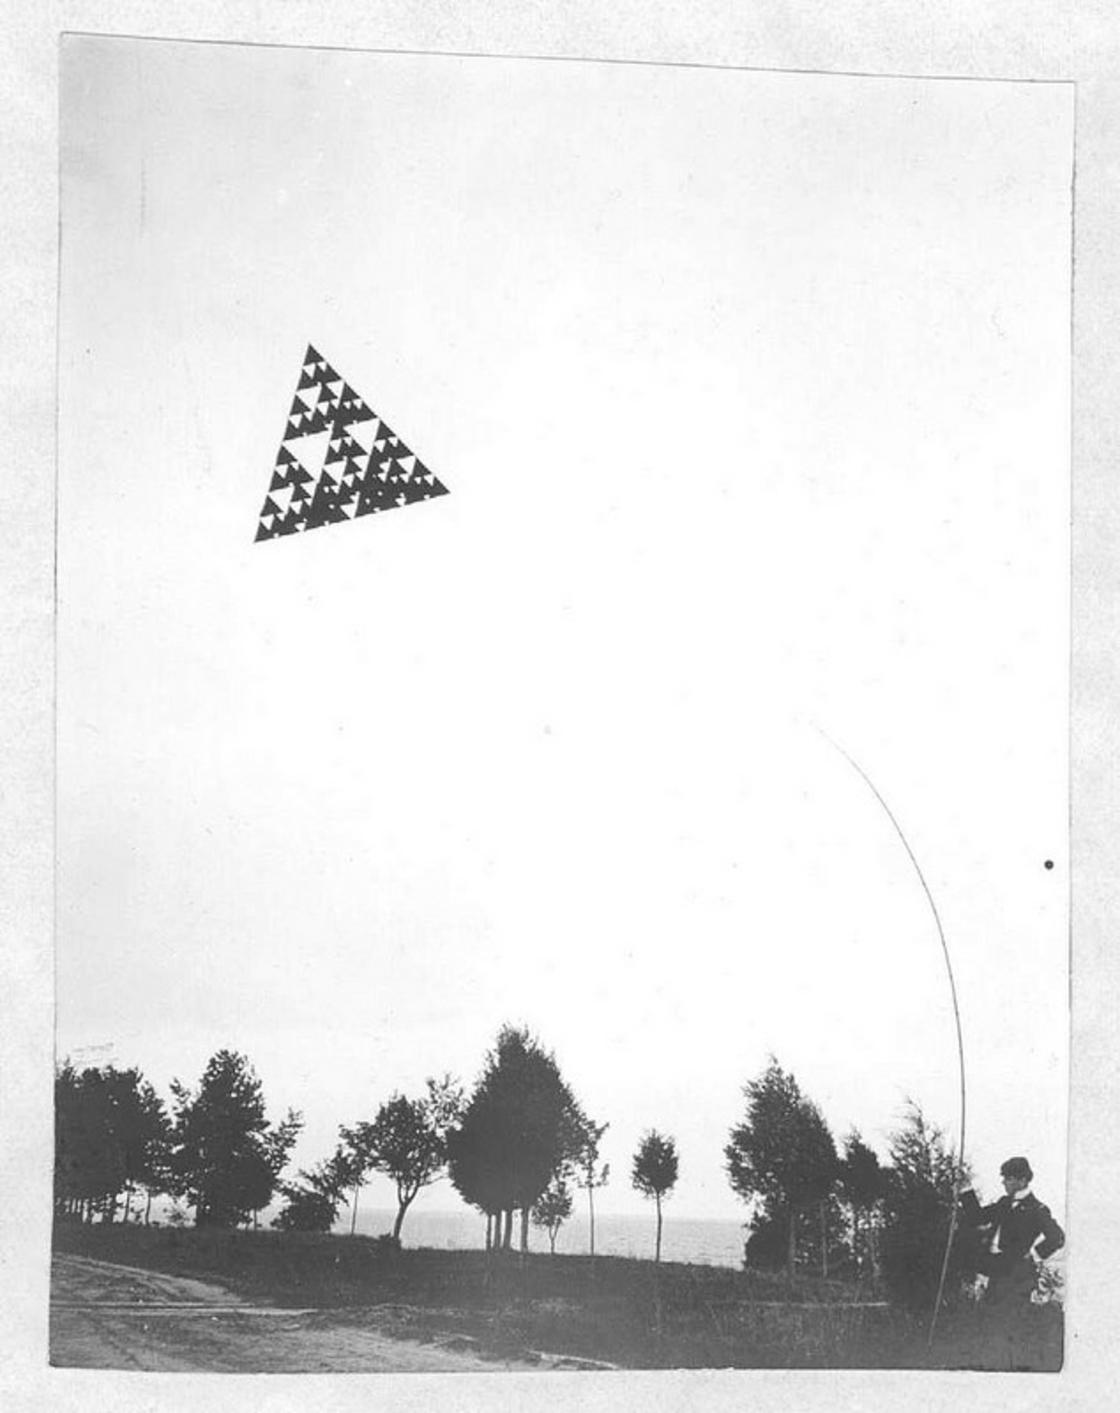 The amazing geometric kites of Alexander Graham Bell